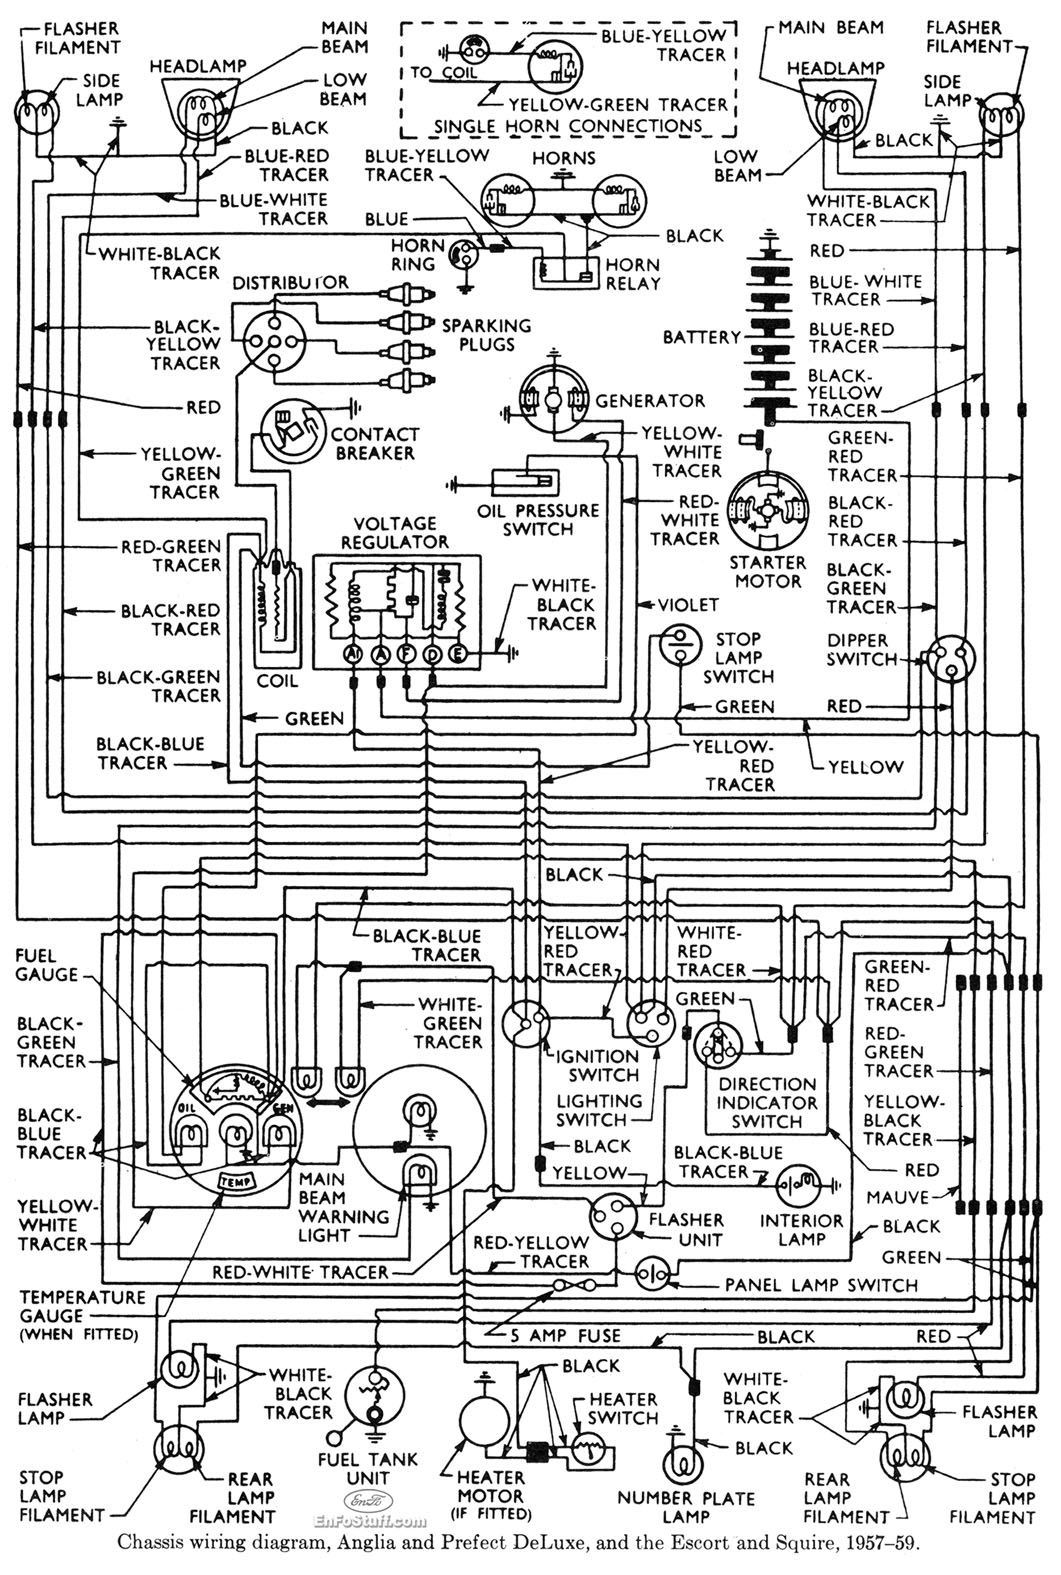 Need For A 1991 Columbia Par Car Wiring Diagram columbia par ... Columbia Par Car Wiring Diagram In Color on columbia par car battery diagram, vin diagram, car starter diagram, club car rev limiter diagram, columbia par golf cart, yamaha golf cart parts diagram, columbia par car accessories, columbia par car clutch, columbia par car voltage regulator, columbia par car manual, ezgo 36 volt battery diagram, precedent club car ignition diagram, columbia par car brakes, columbia 48v wiring, club car controller diagram, columbia par car engine diagram, harley-davidson golf cart engine diagram, columbia par car motor, columbia par car parts, 7.2 volt gem car battery diagram,